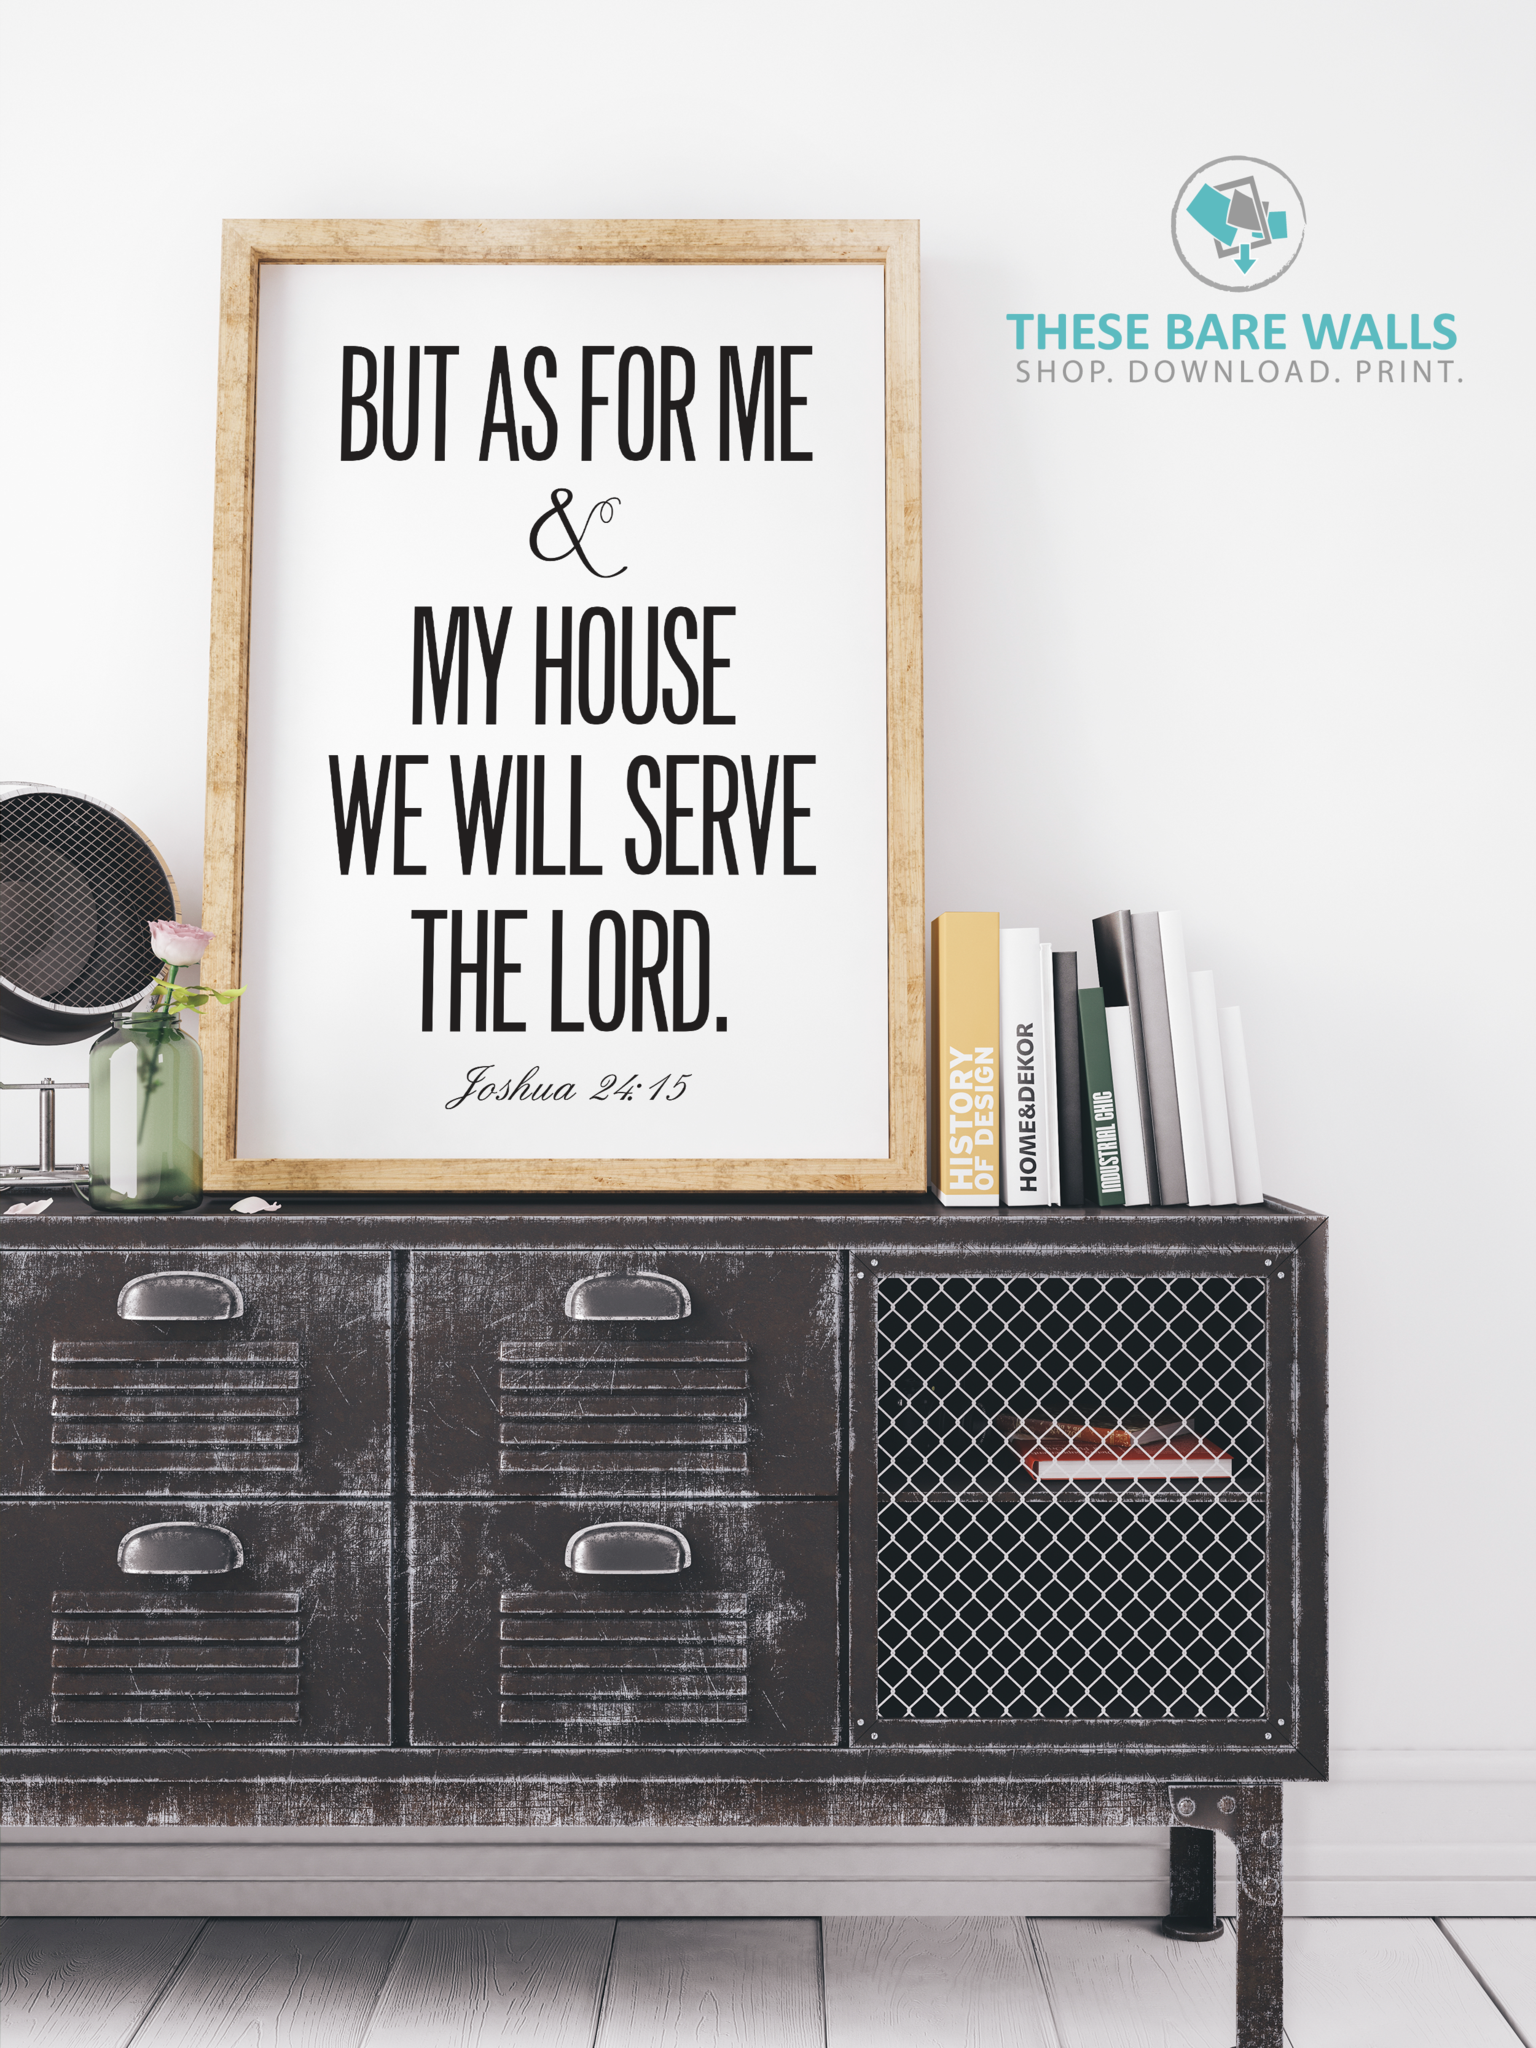 But as for me and my house we will serve the lord engineering print